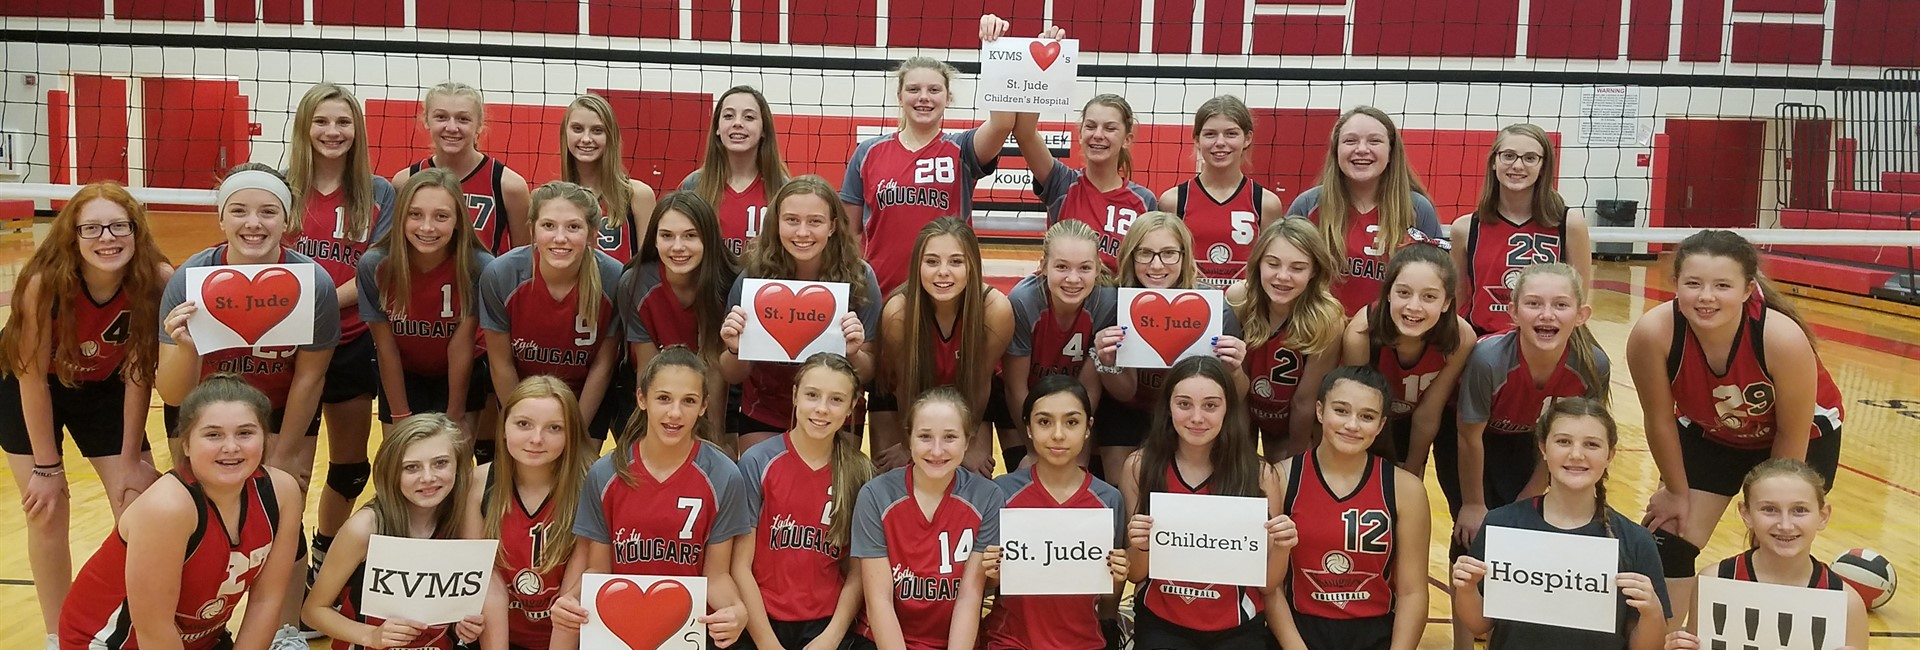 KVMS Volleyball Dig Pink Night for St Jude's Hospital